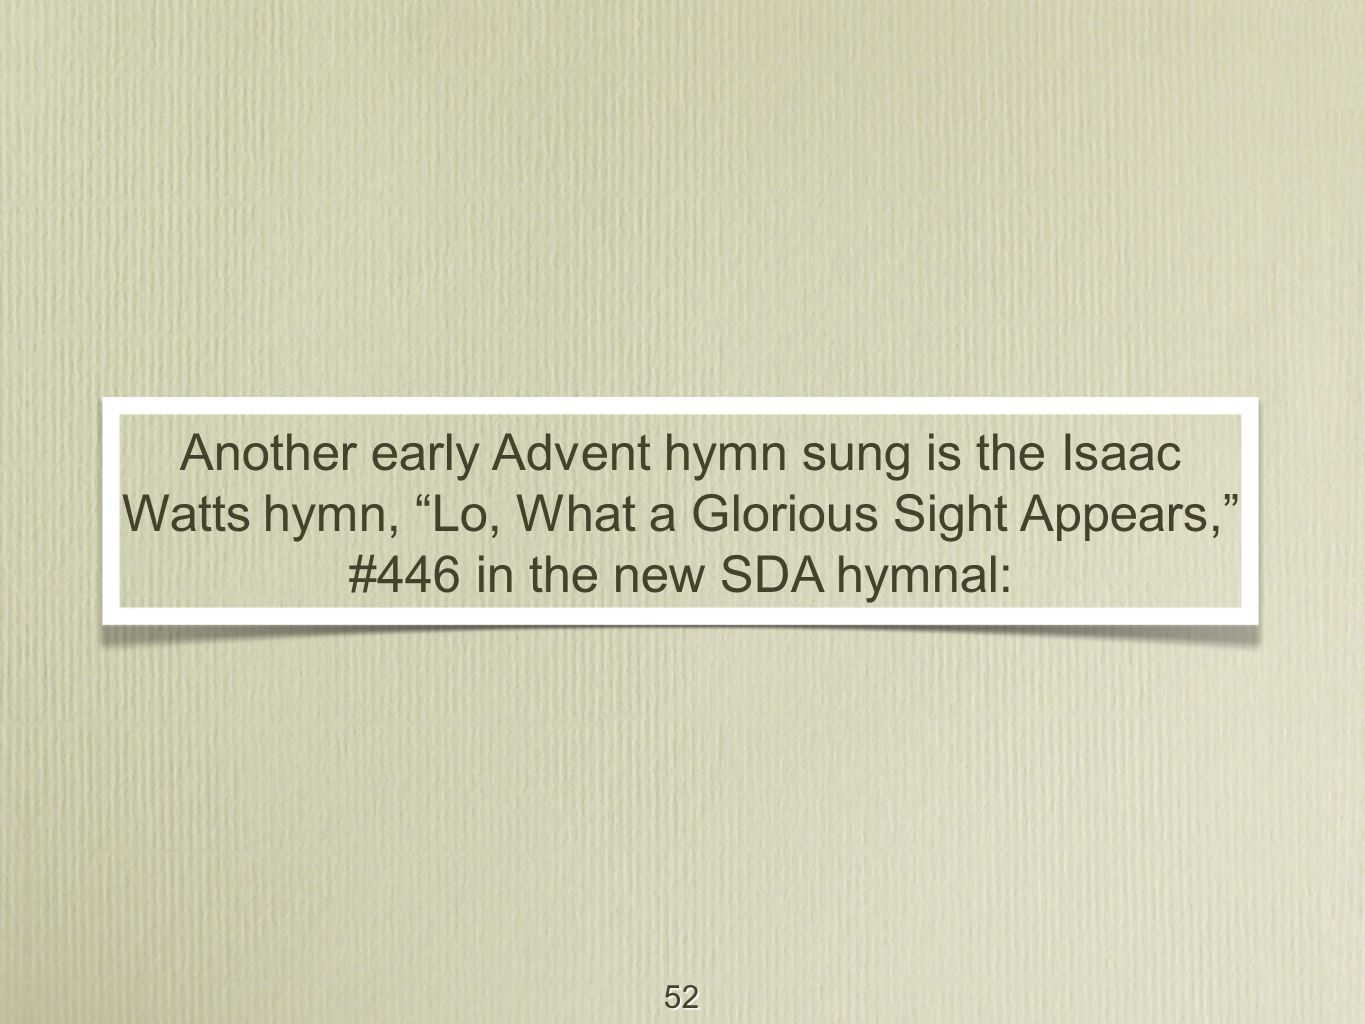 52 Another early Advent hymn sung is the Isaac Watts hymn, Lo, What a Glorious Sight Appears, #446 in the new SDA hymnal: